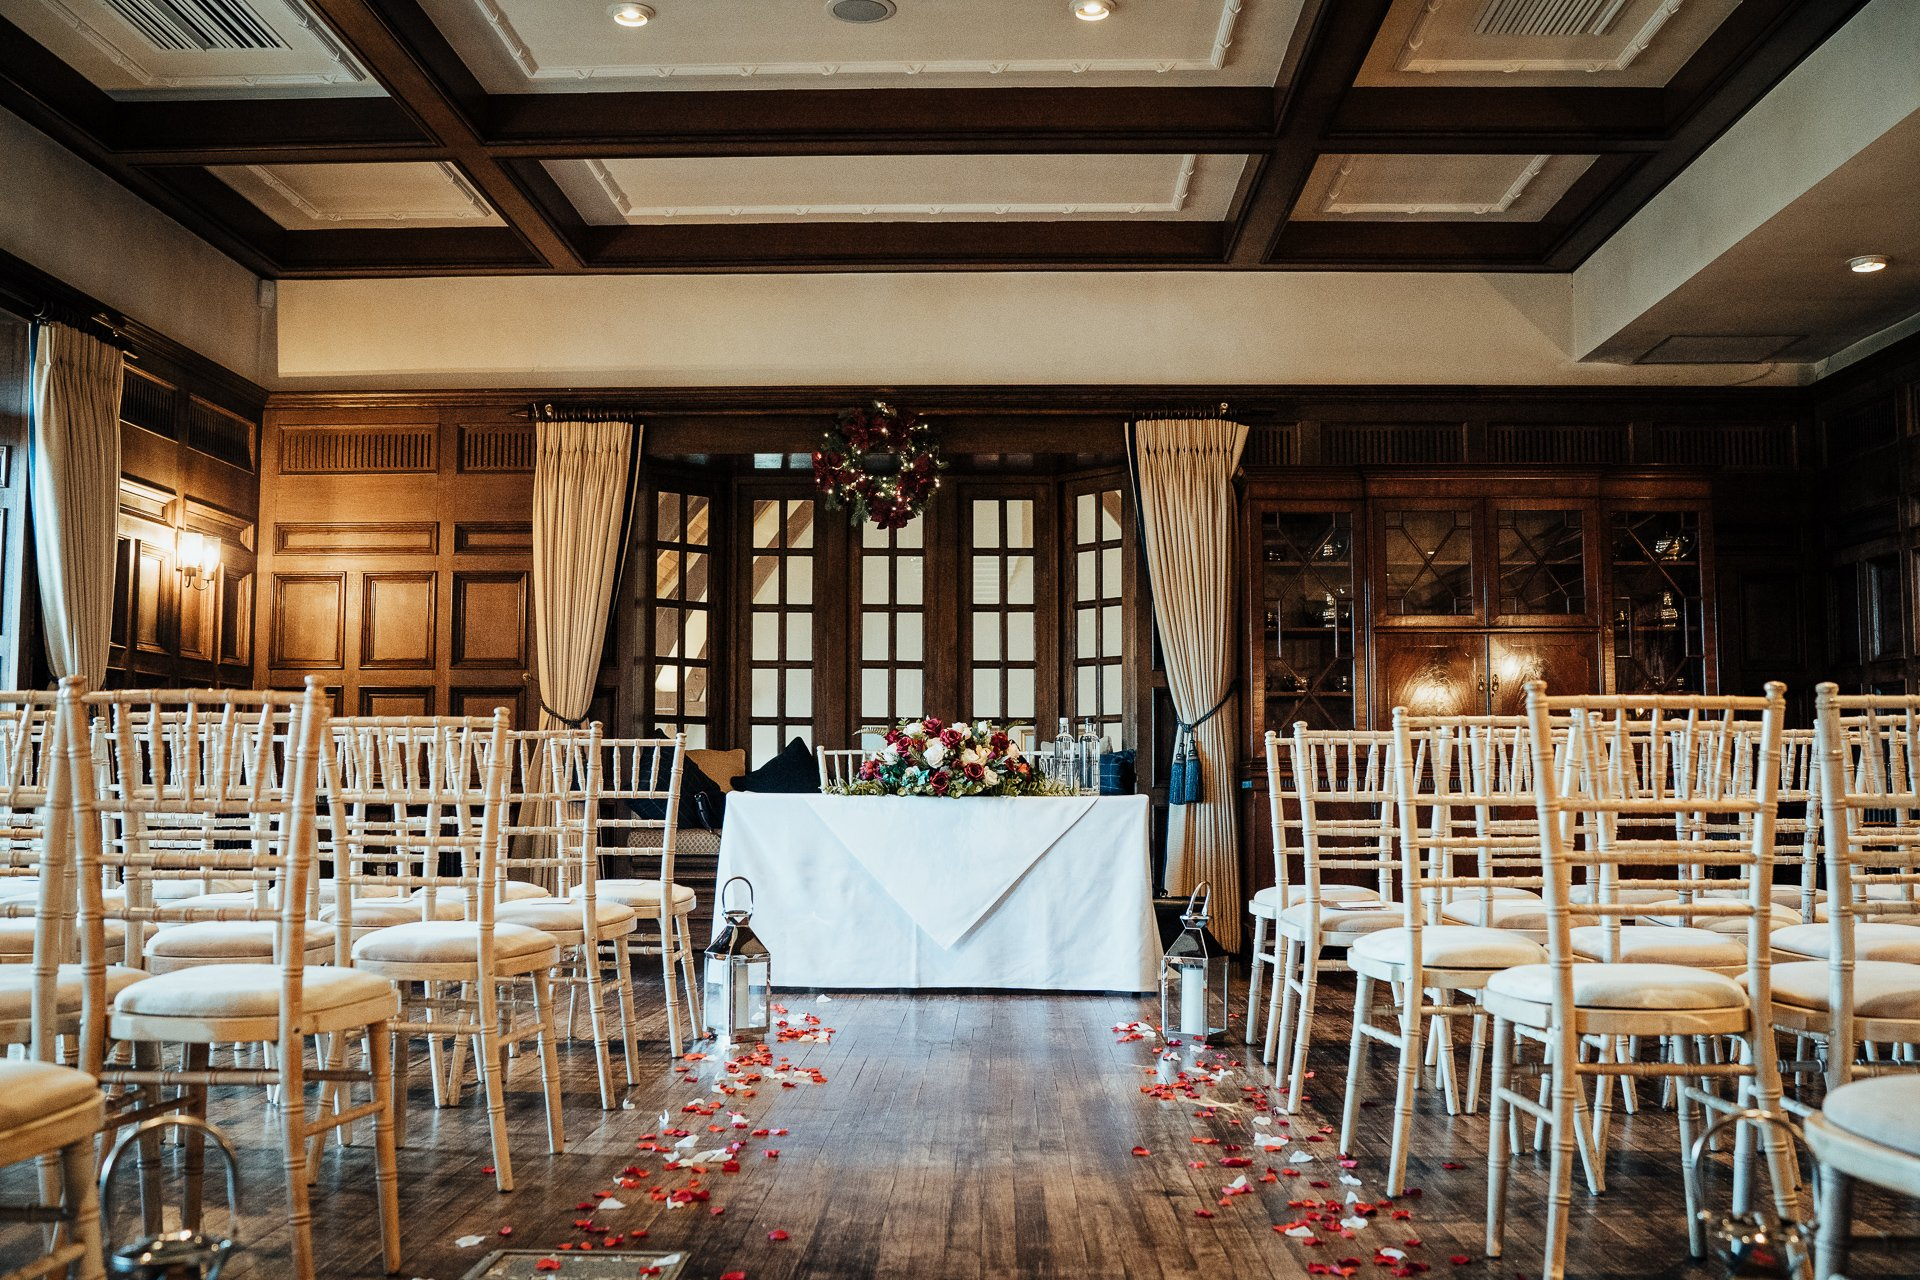 Wooden panelled wedding Ceremony room decorated with flower petals